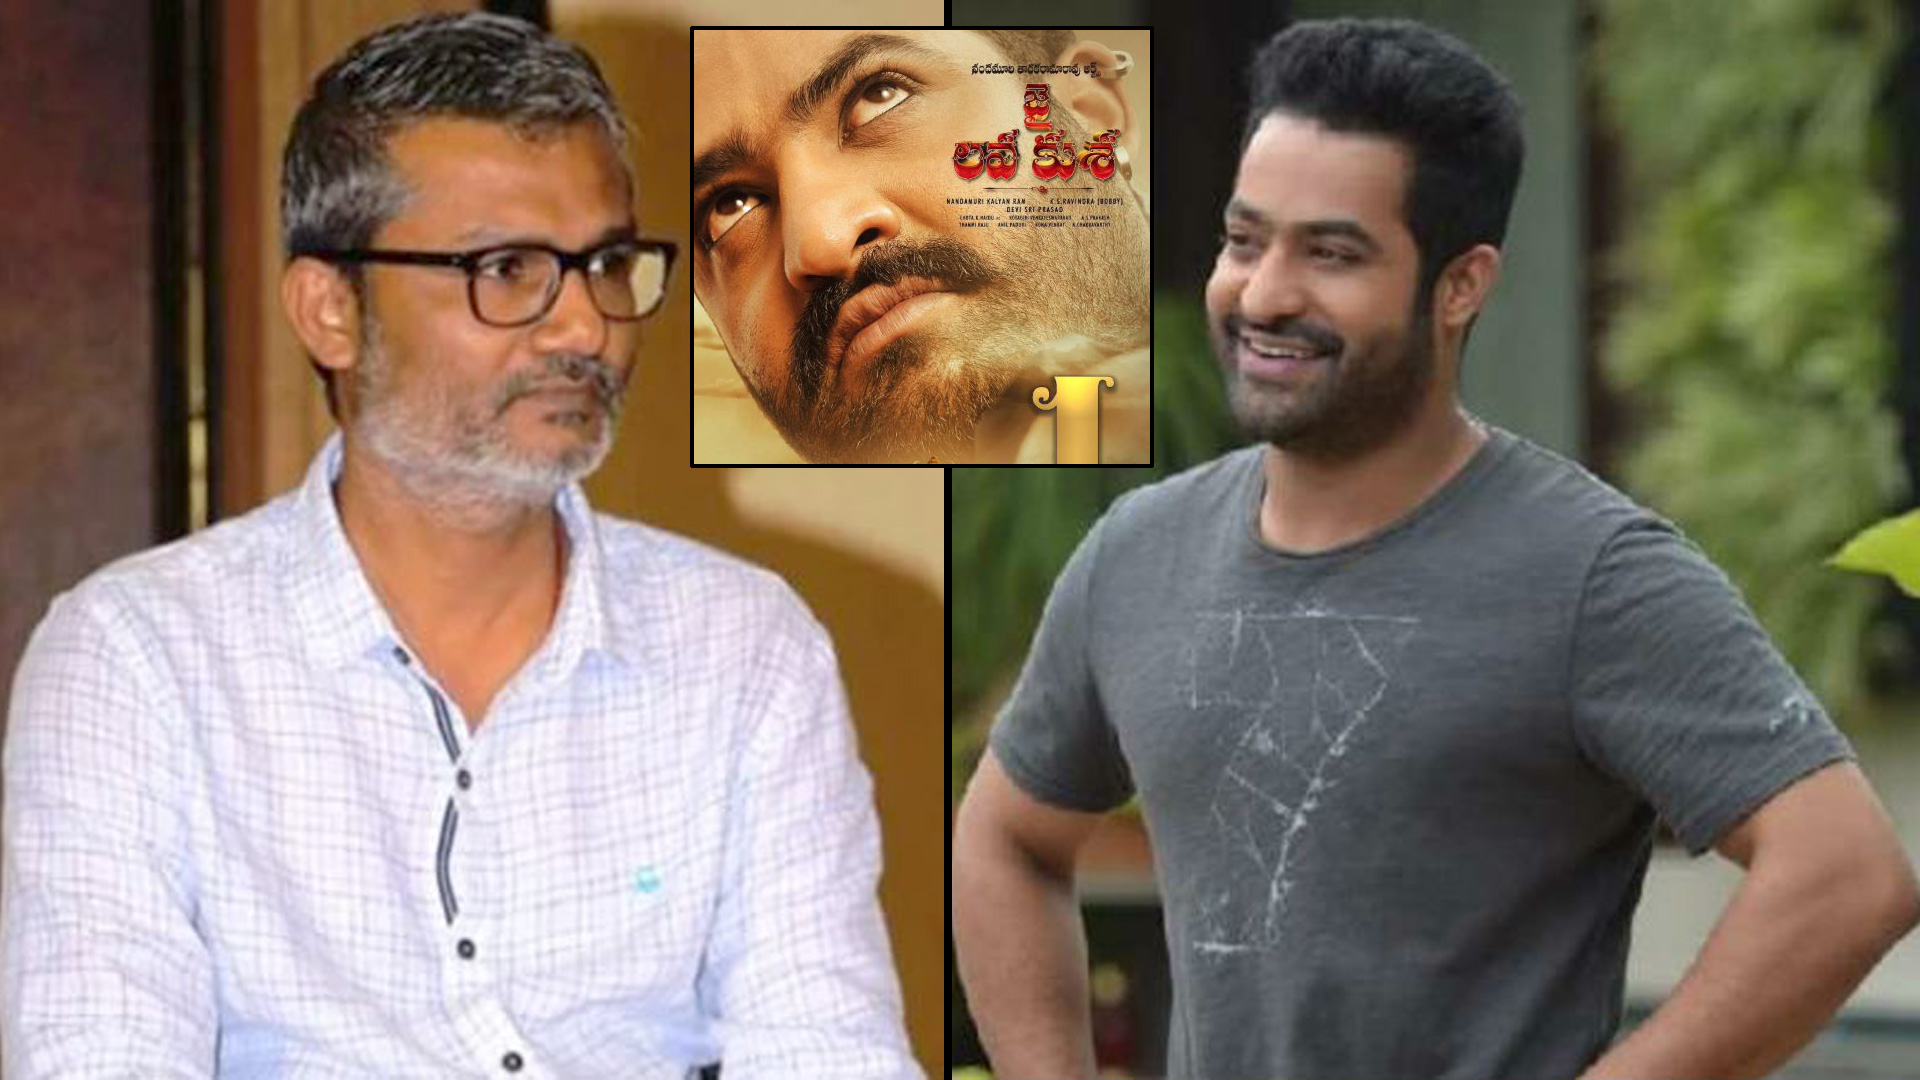 Jr Ntr To Play As Ravana In Mythological Epic Ramayana || Filmibeat Telugu